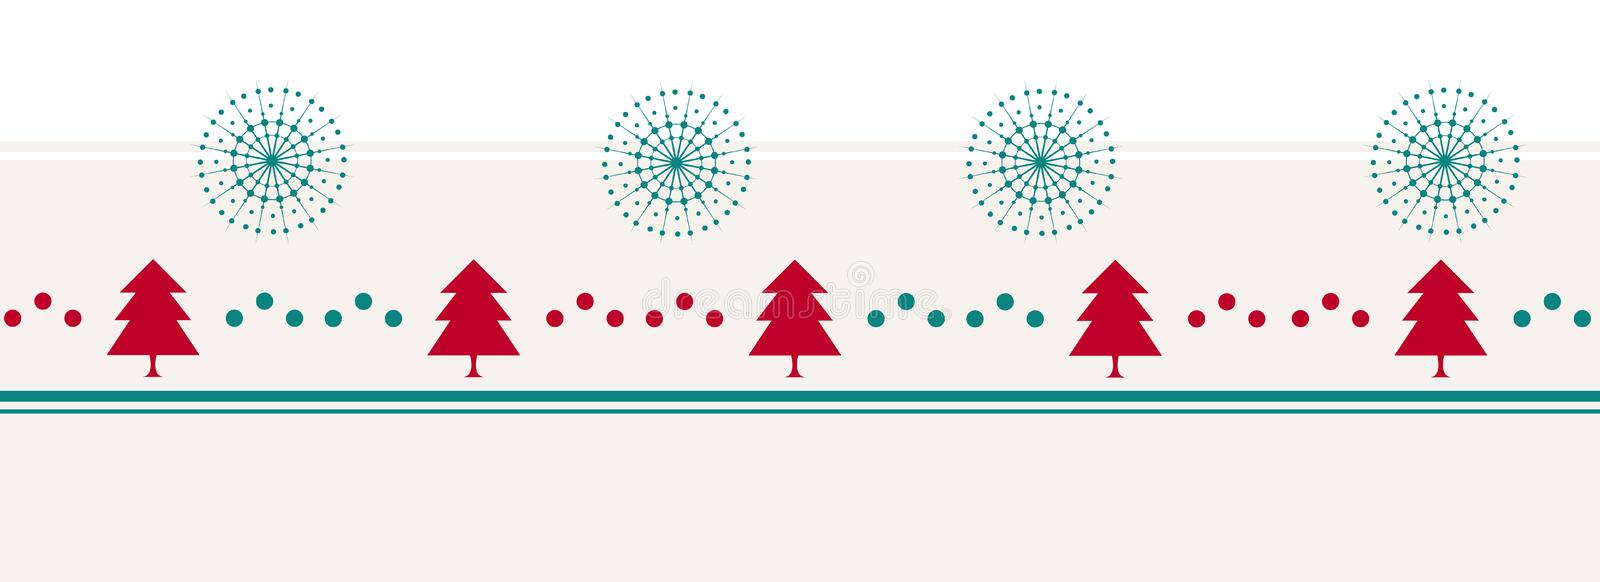 Vintage Merry Christmas background with trees, dots and snowflakes. vector illustration